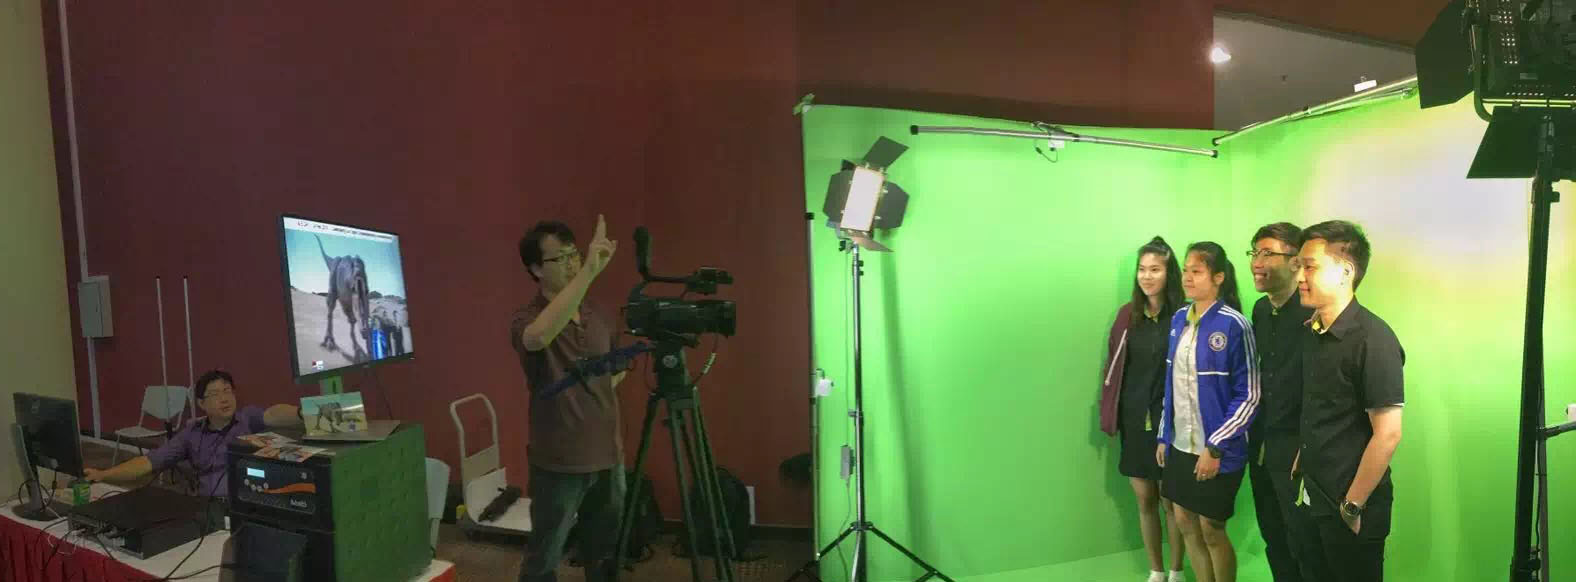 How To Setup Professional Recording Studio Singapore Audio Visual System Hook Up Diagram Expandore Electronics Pte Ltd Is The Based Distributor And Integrator For Video Set